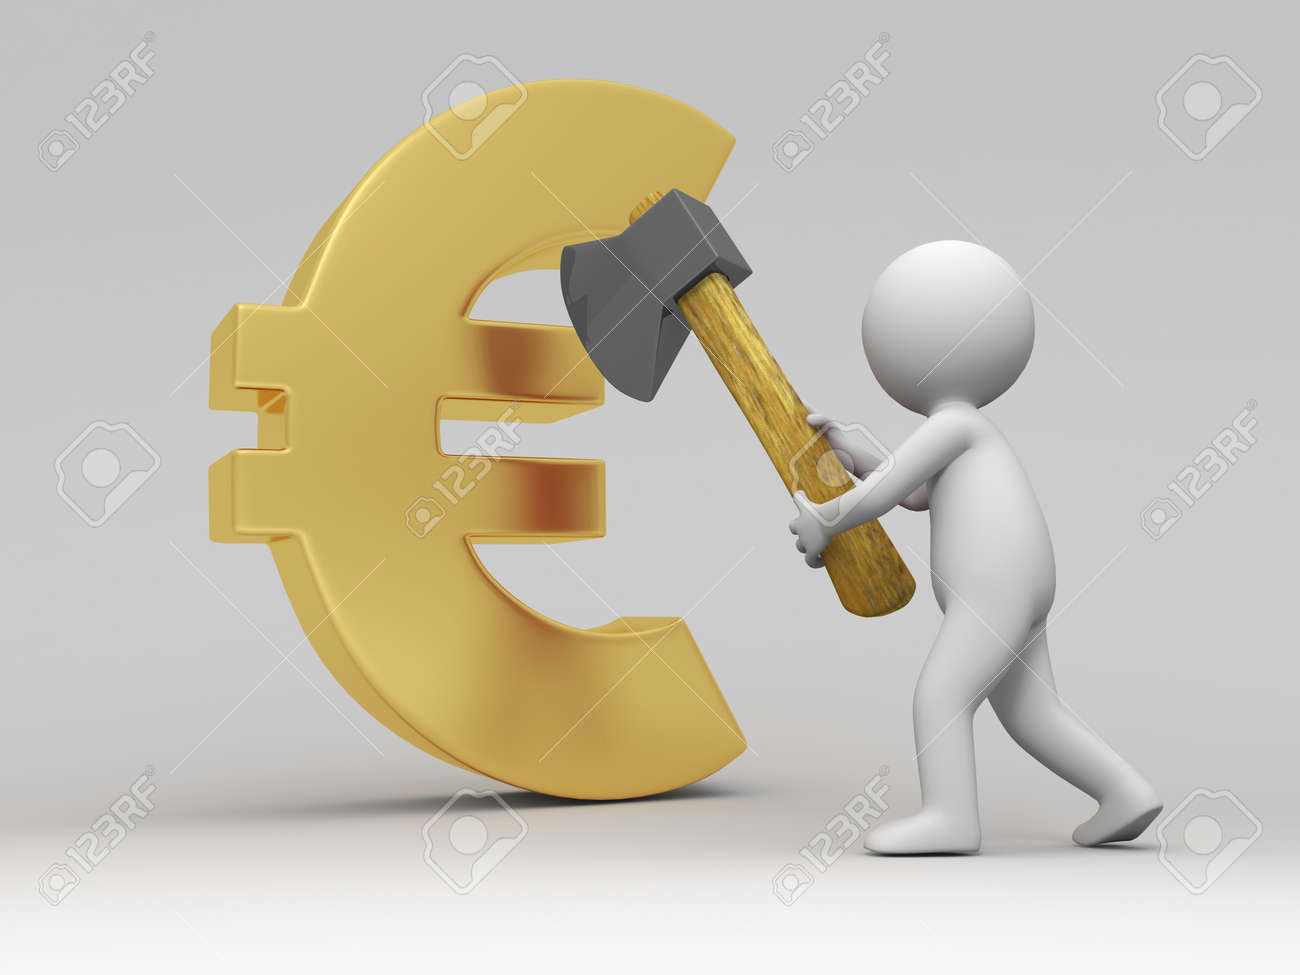 Euro symbol a people cut a euro symbol with a axe stock photo euro symbol a people cut a euro symbol with a axe stock photo 15431787 buycottarizona Choice Image